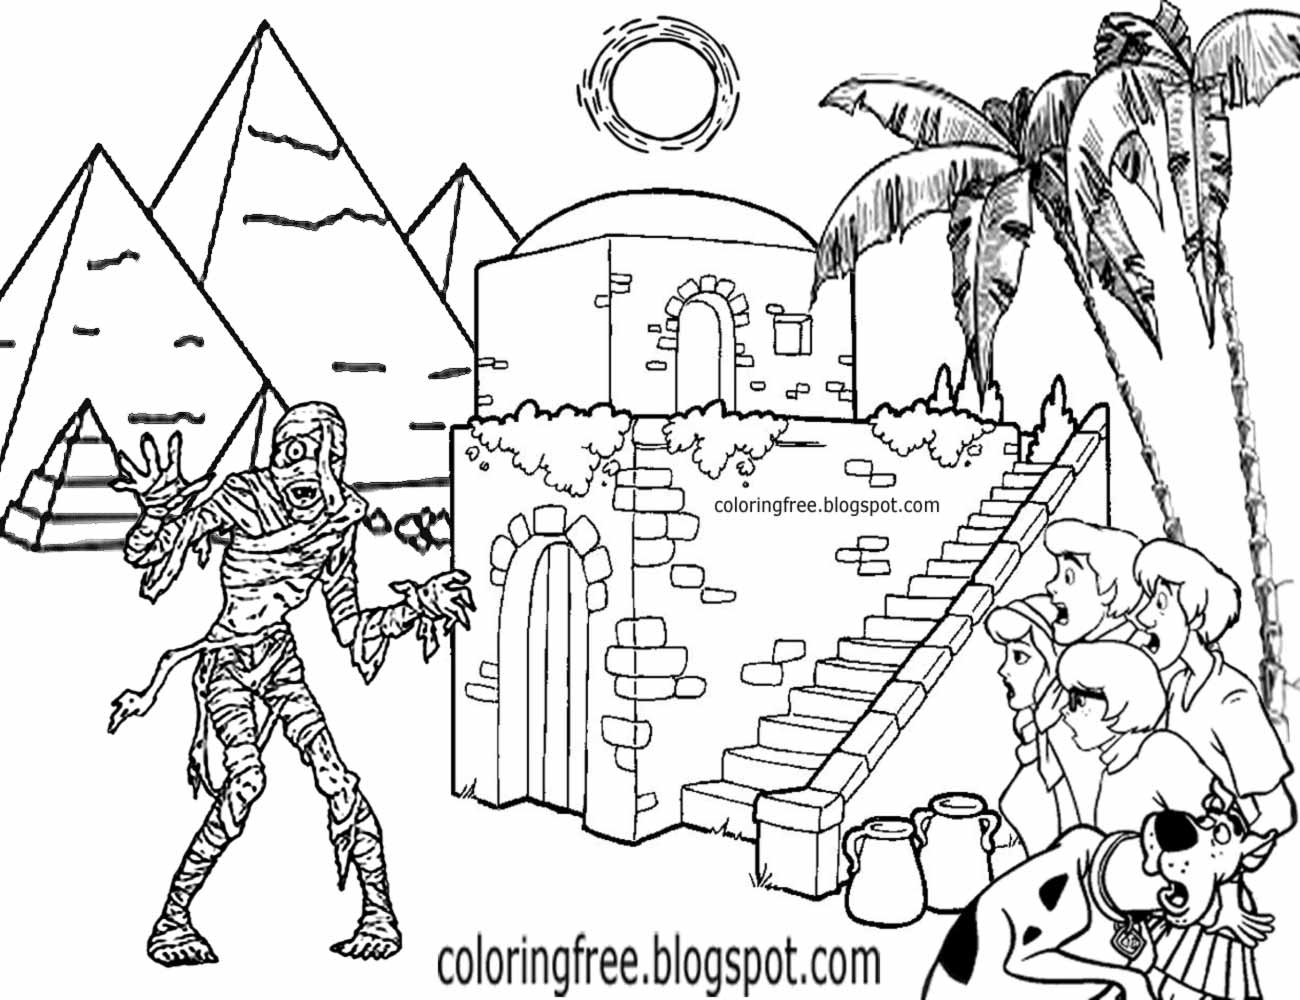 Top 10 Ancient Egypt Coloring Pages For Toddlers | 1000x1300